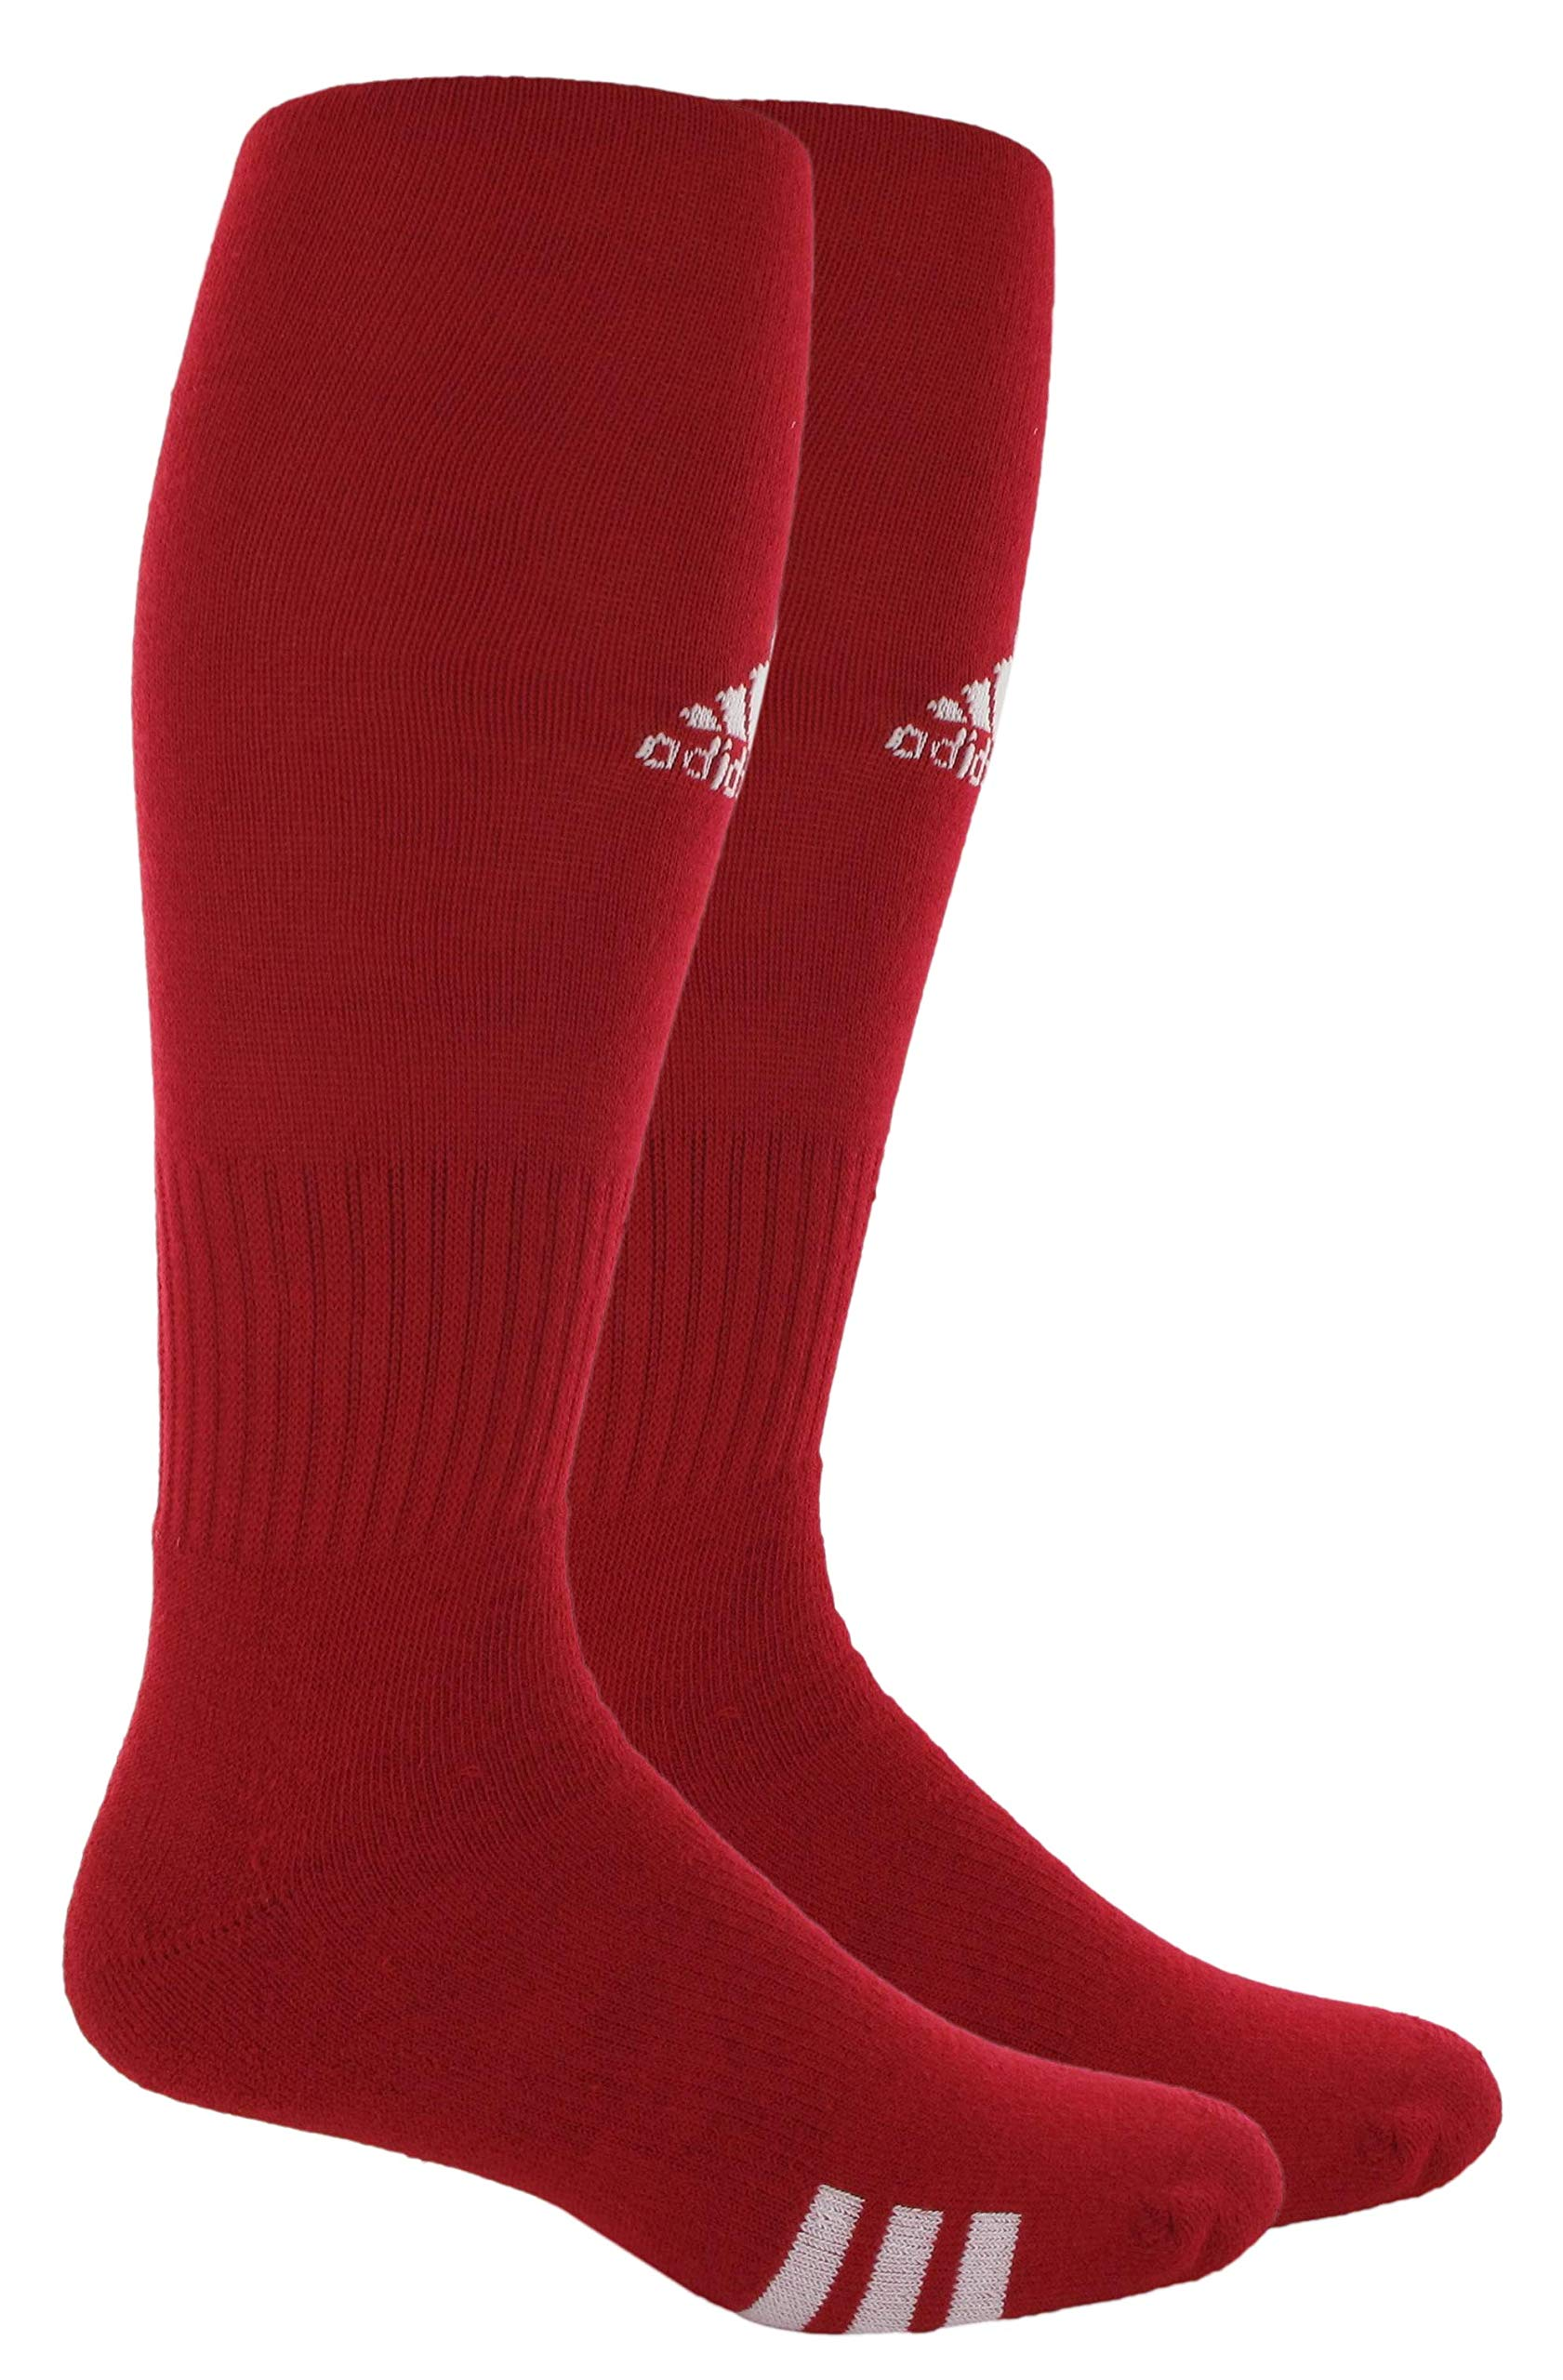 adidas Unisex Rivalry Field OTC Sock (2-Pair), University Red/White, 5-8.5 by adidas